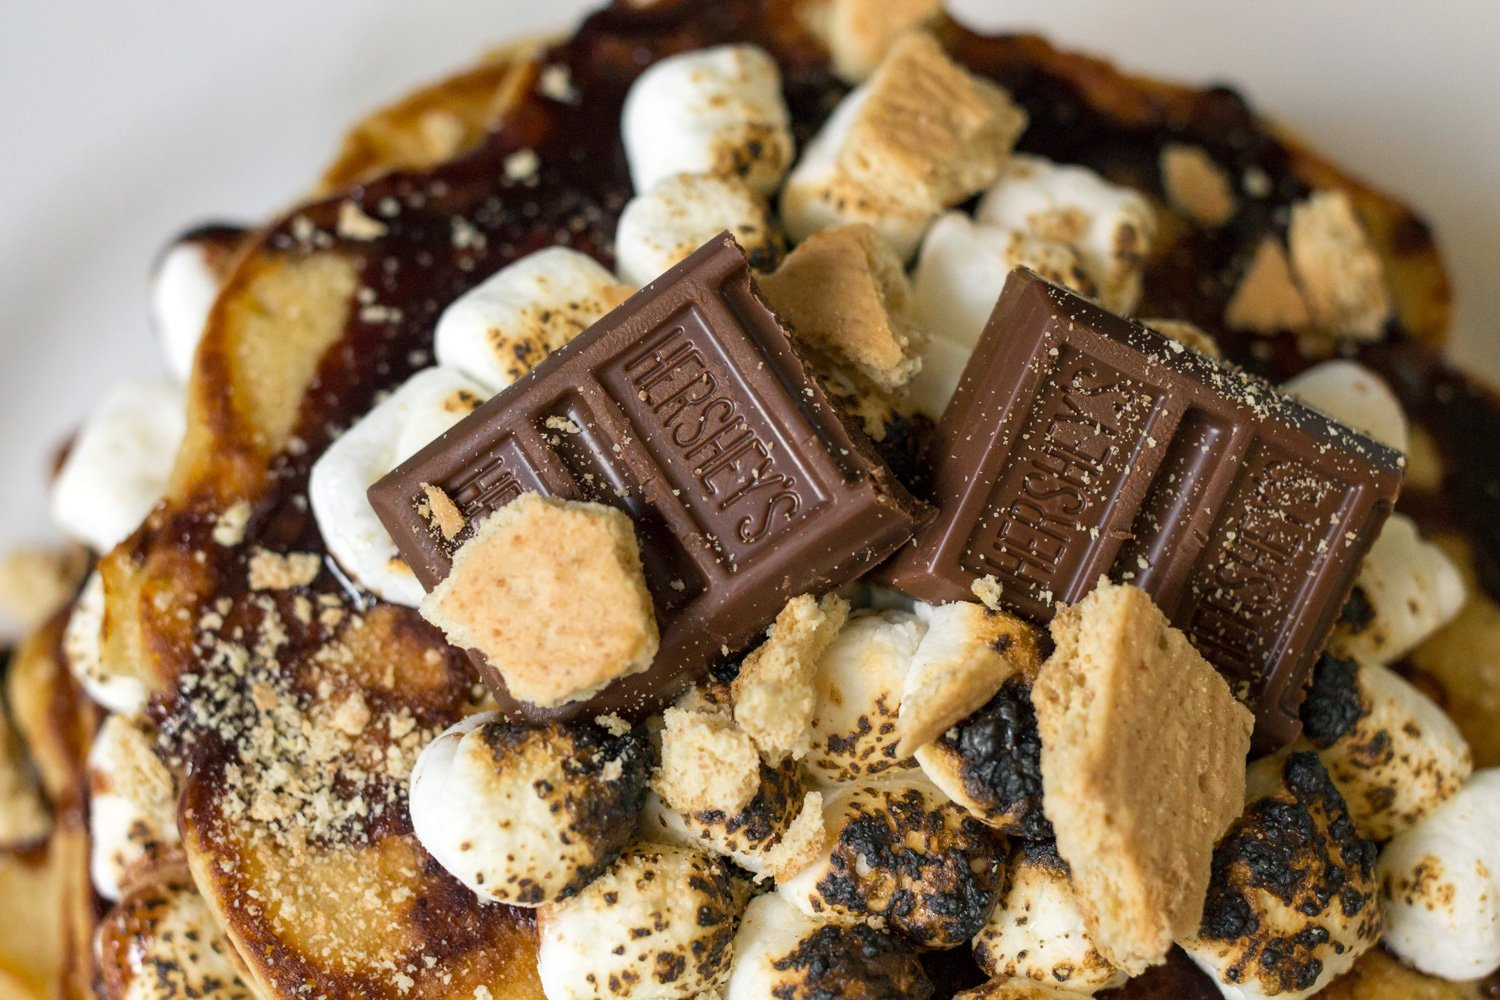 Up close photo of roasted marshmallows, chocolate bar, and graham cracker pieces on top of the pancakes.